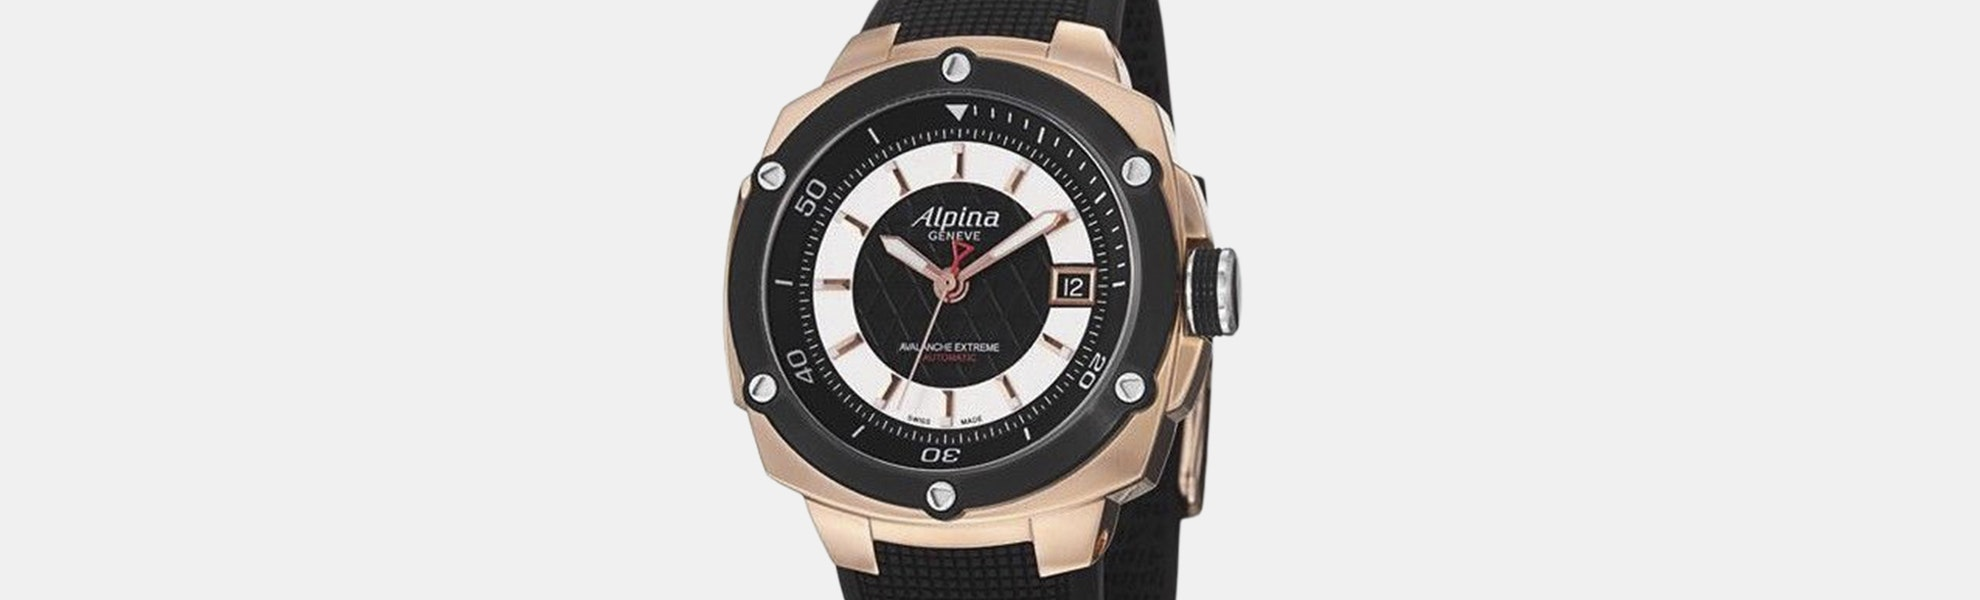 Alpina Adventure Extreme Automatic Watch